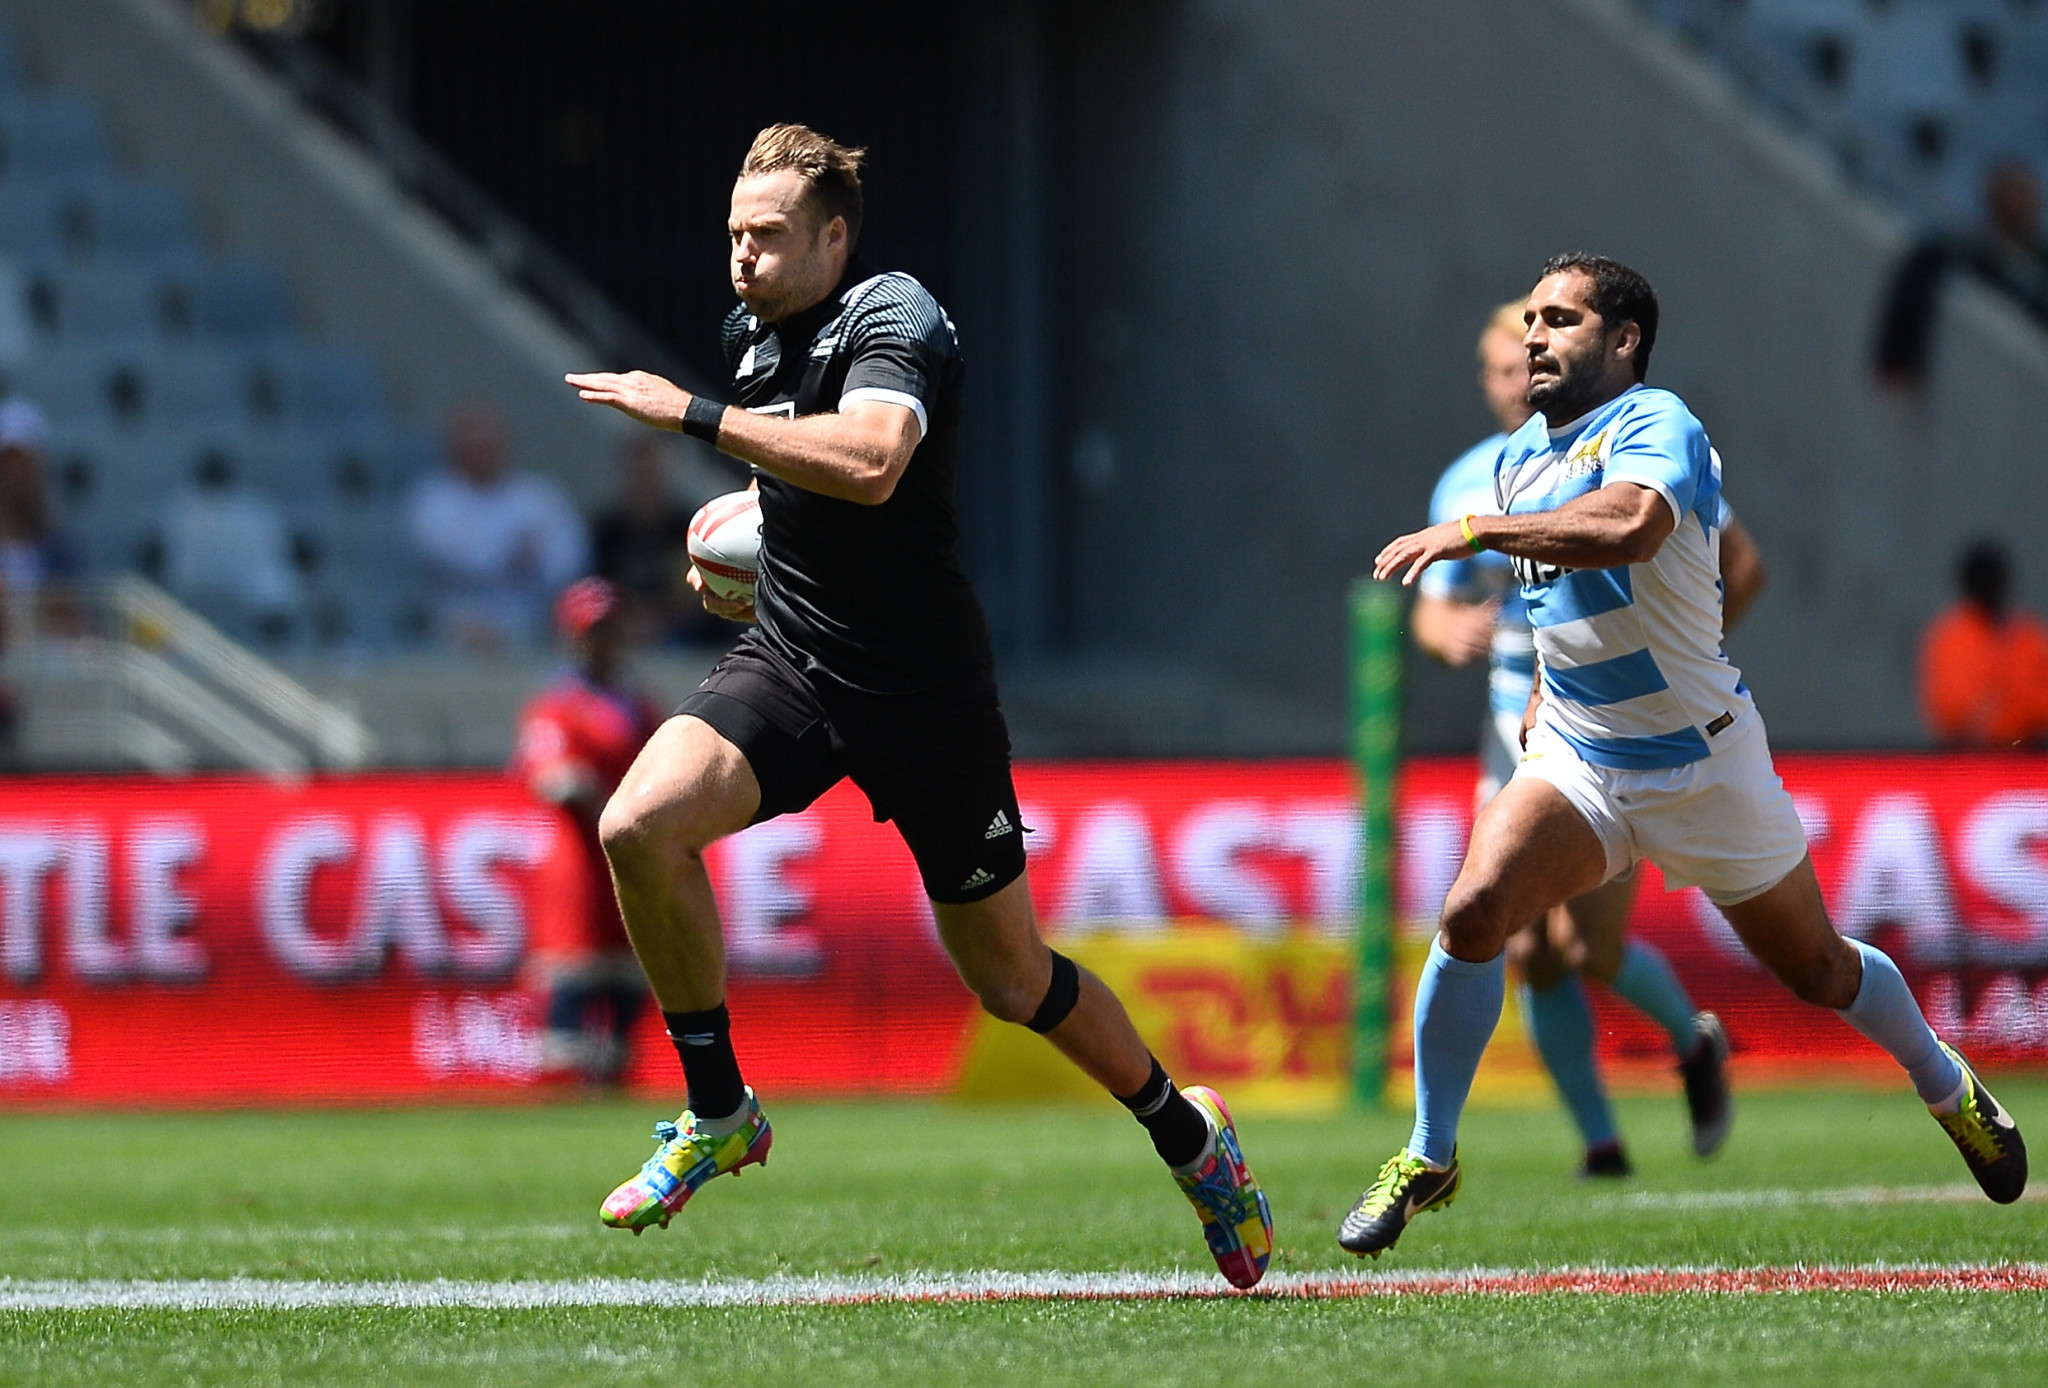 New Zealand eye three in a row at Sydney World Rugby Sevens Series